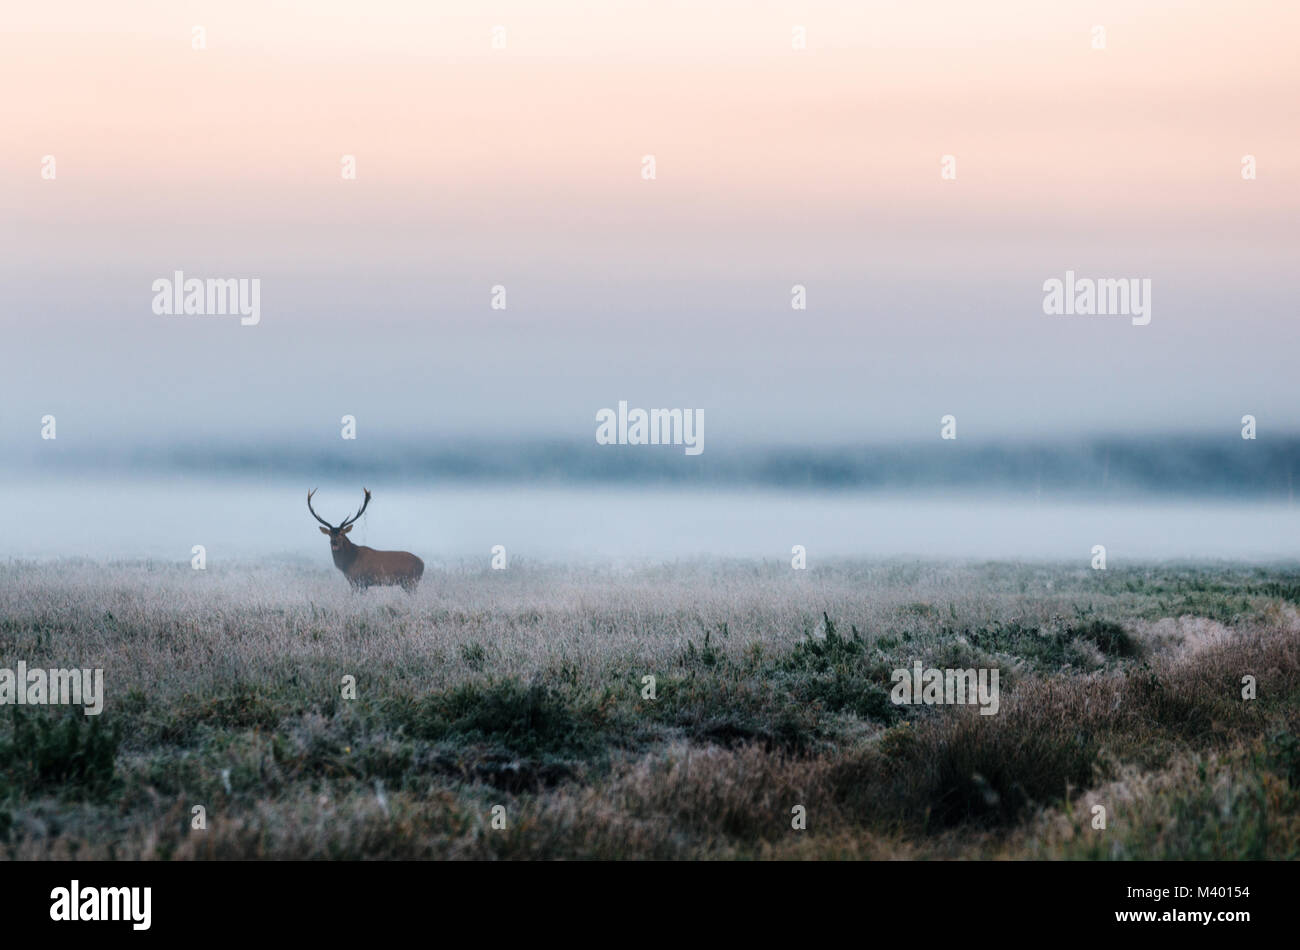 Beautiful red deer stag on the snowy field near the foggy misty forest landscape in autumn in Belarus. - Stock Image